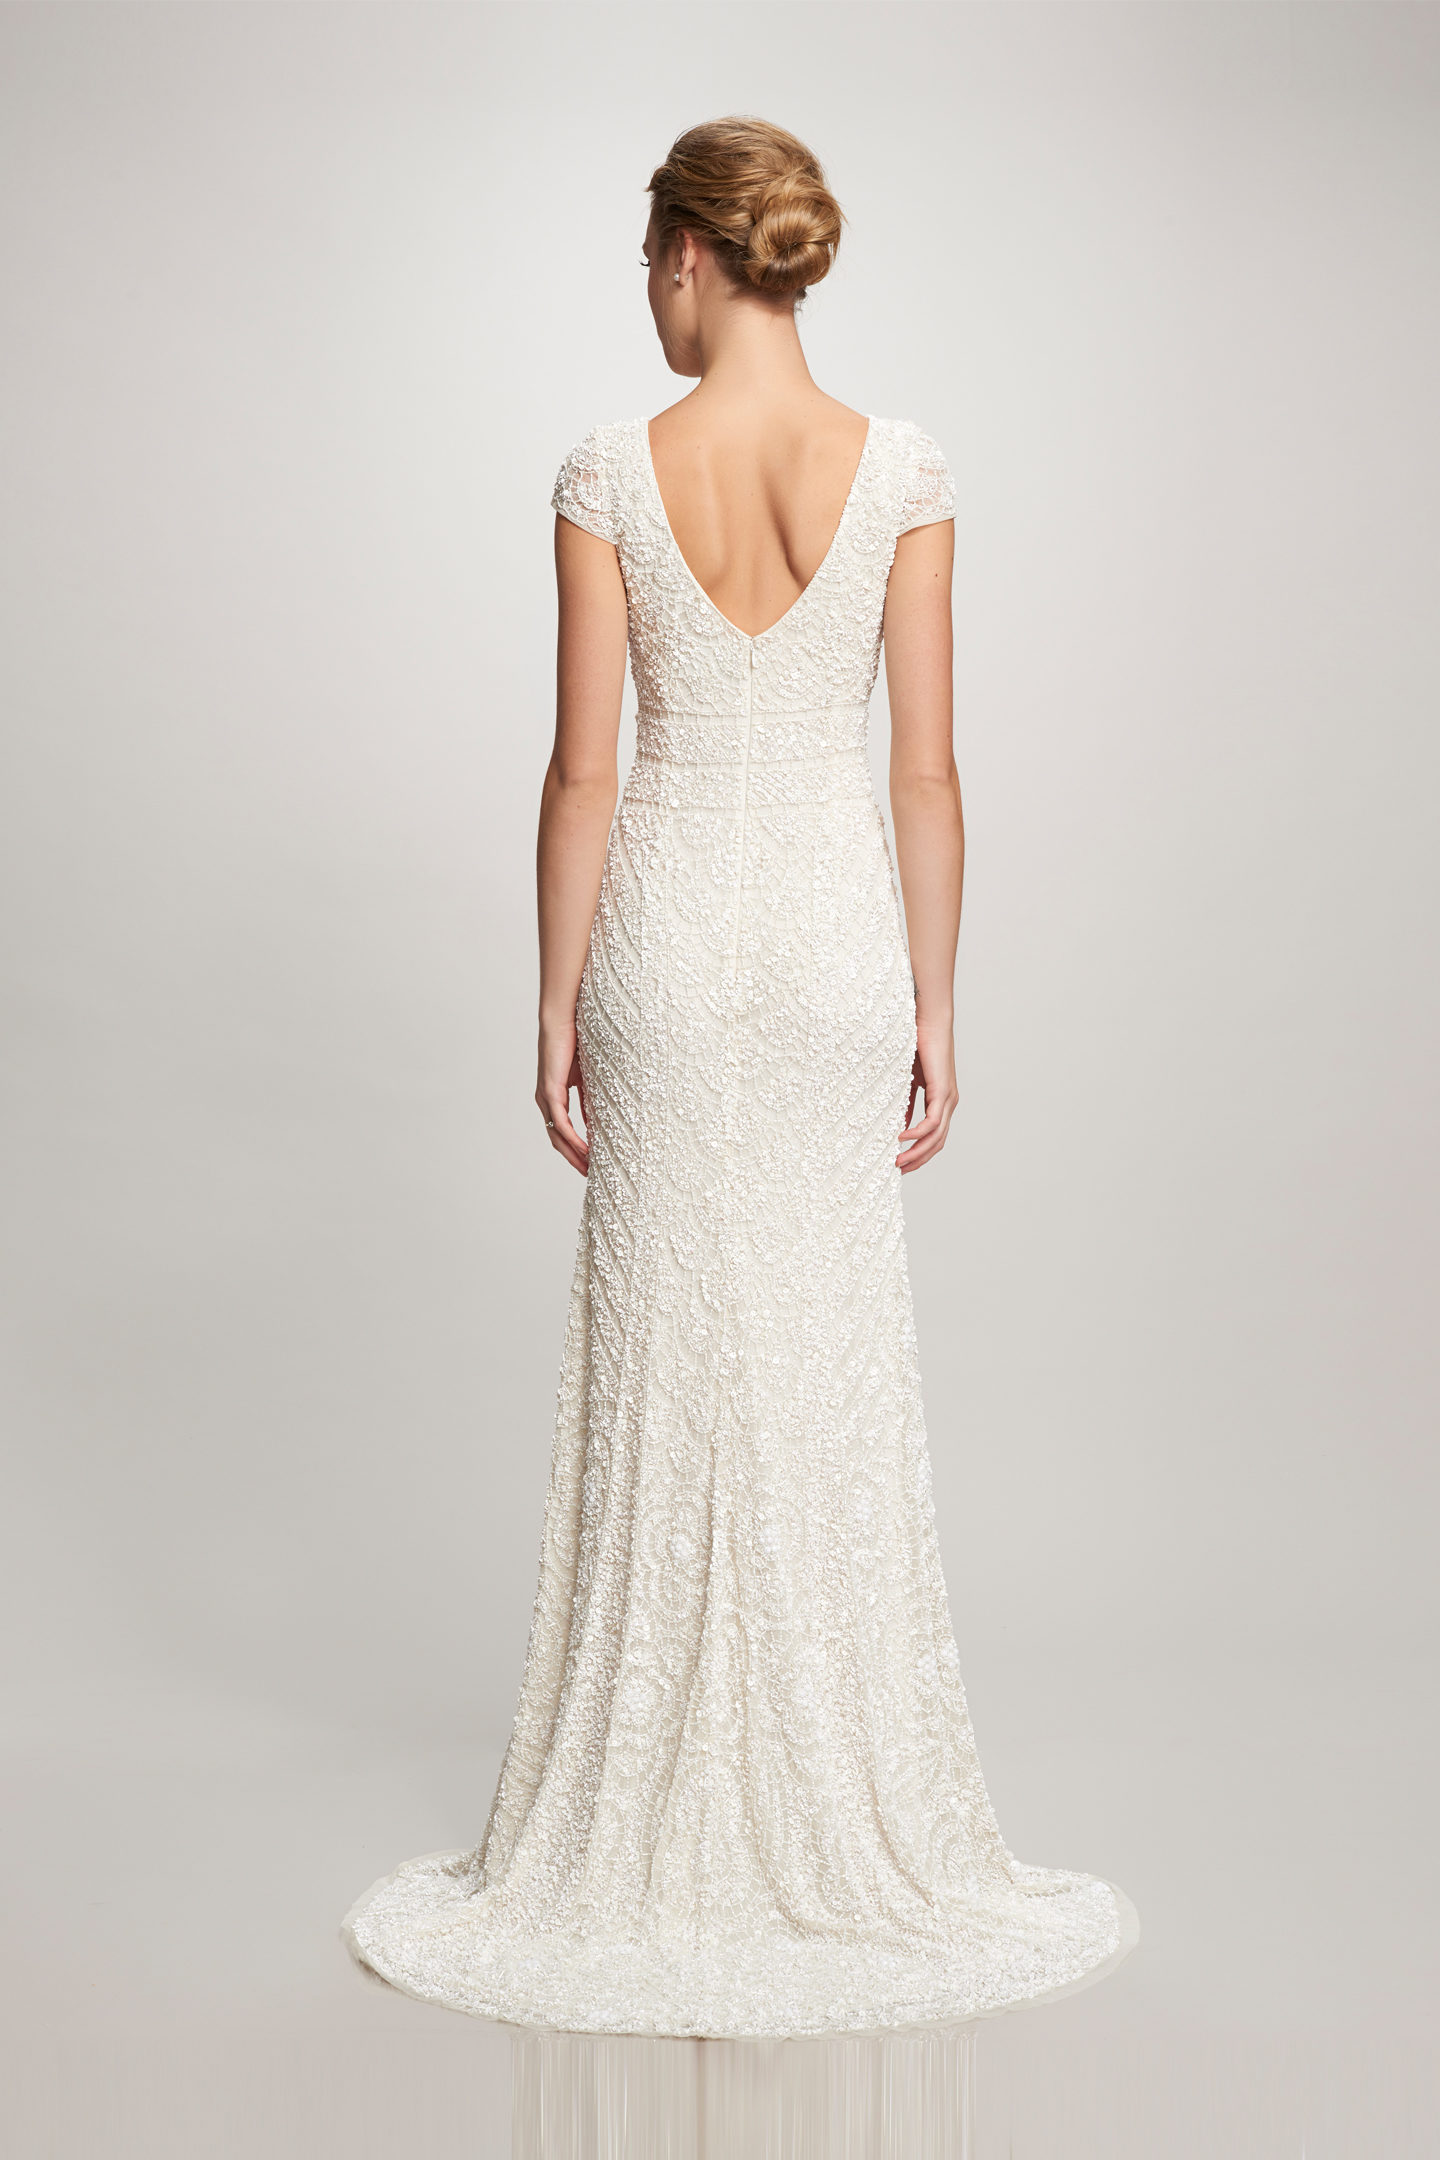 Lilia gown by Theia Couture available at Maggie Louise Bridal